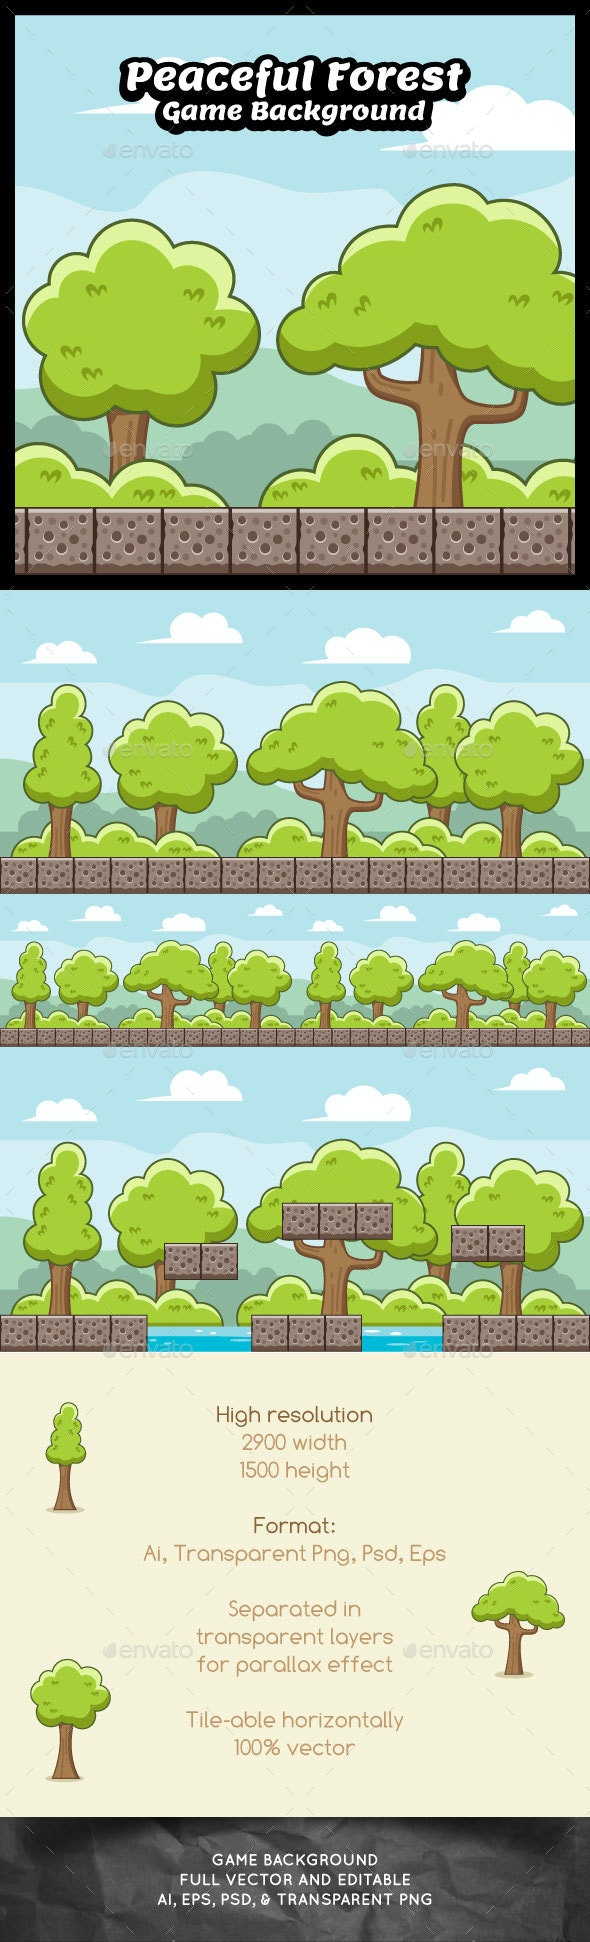 Peaceful Forest Game Background - Backgrounds Game Assets